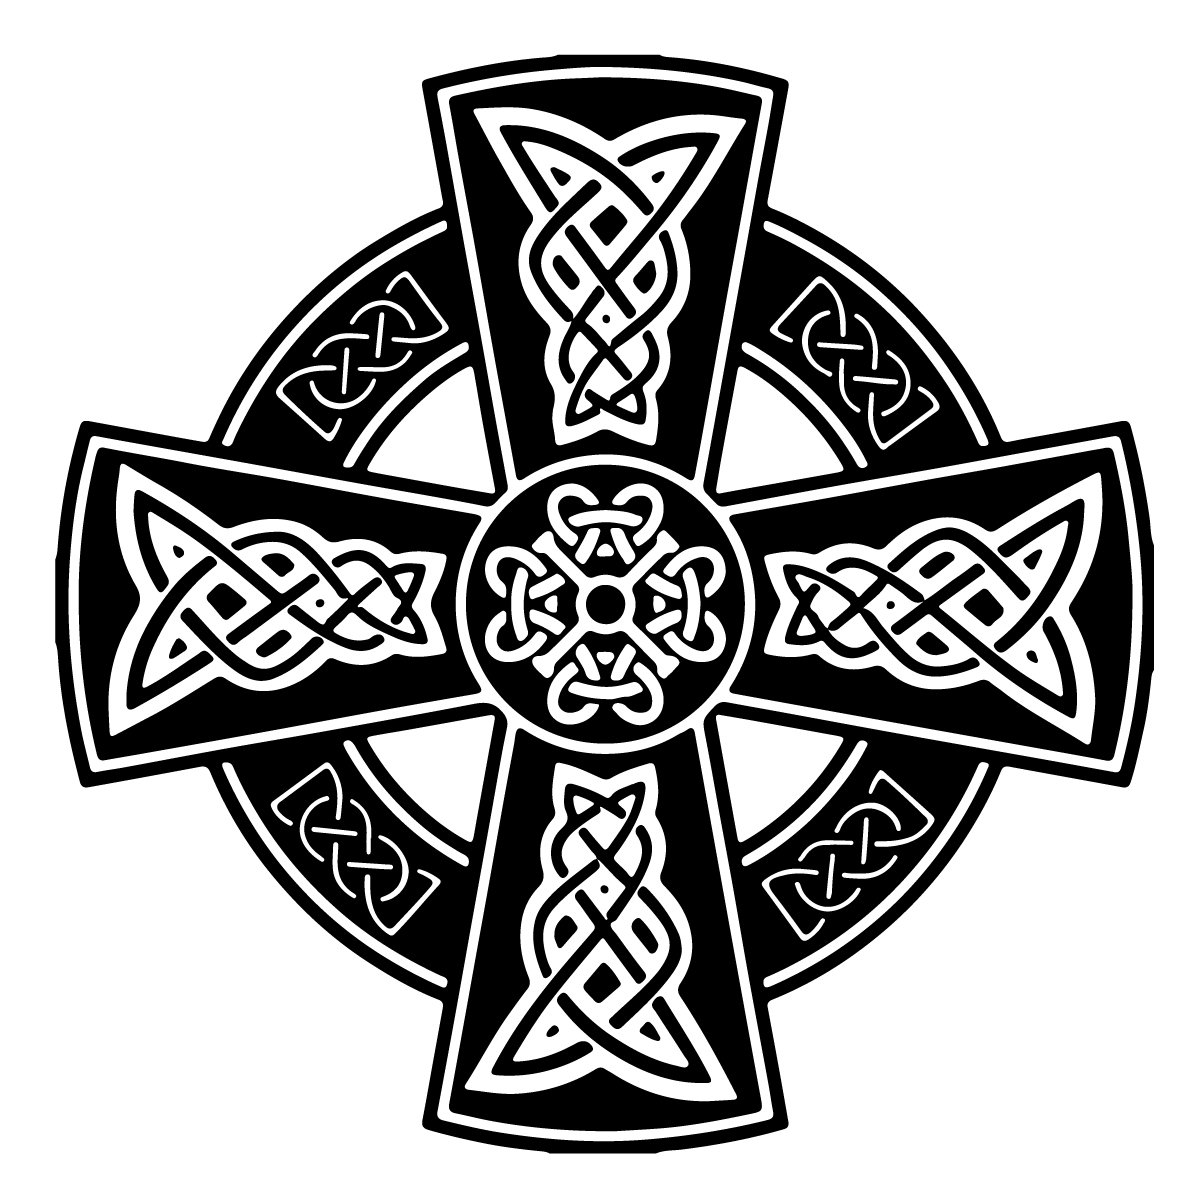 Celtic symbols and their meanings mythologian there are many theories regarding the origin of the symbol although none of them could be and possibly never will be confirmed buycottarizona Image collections